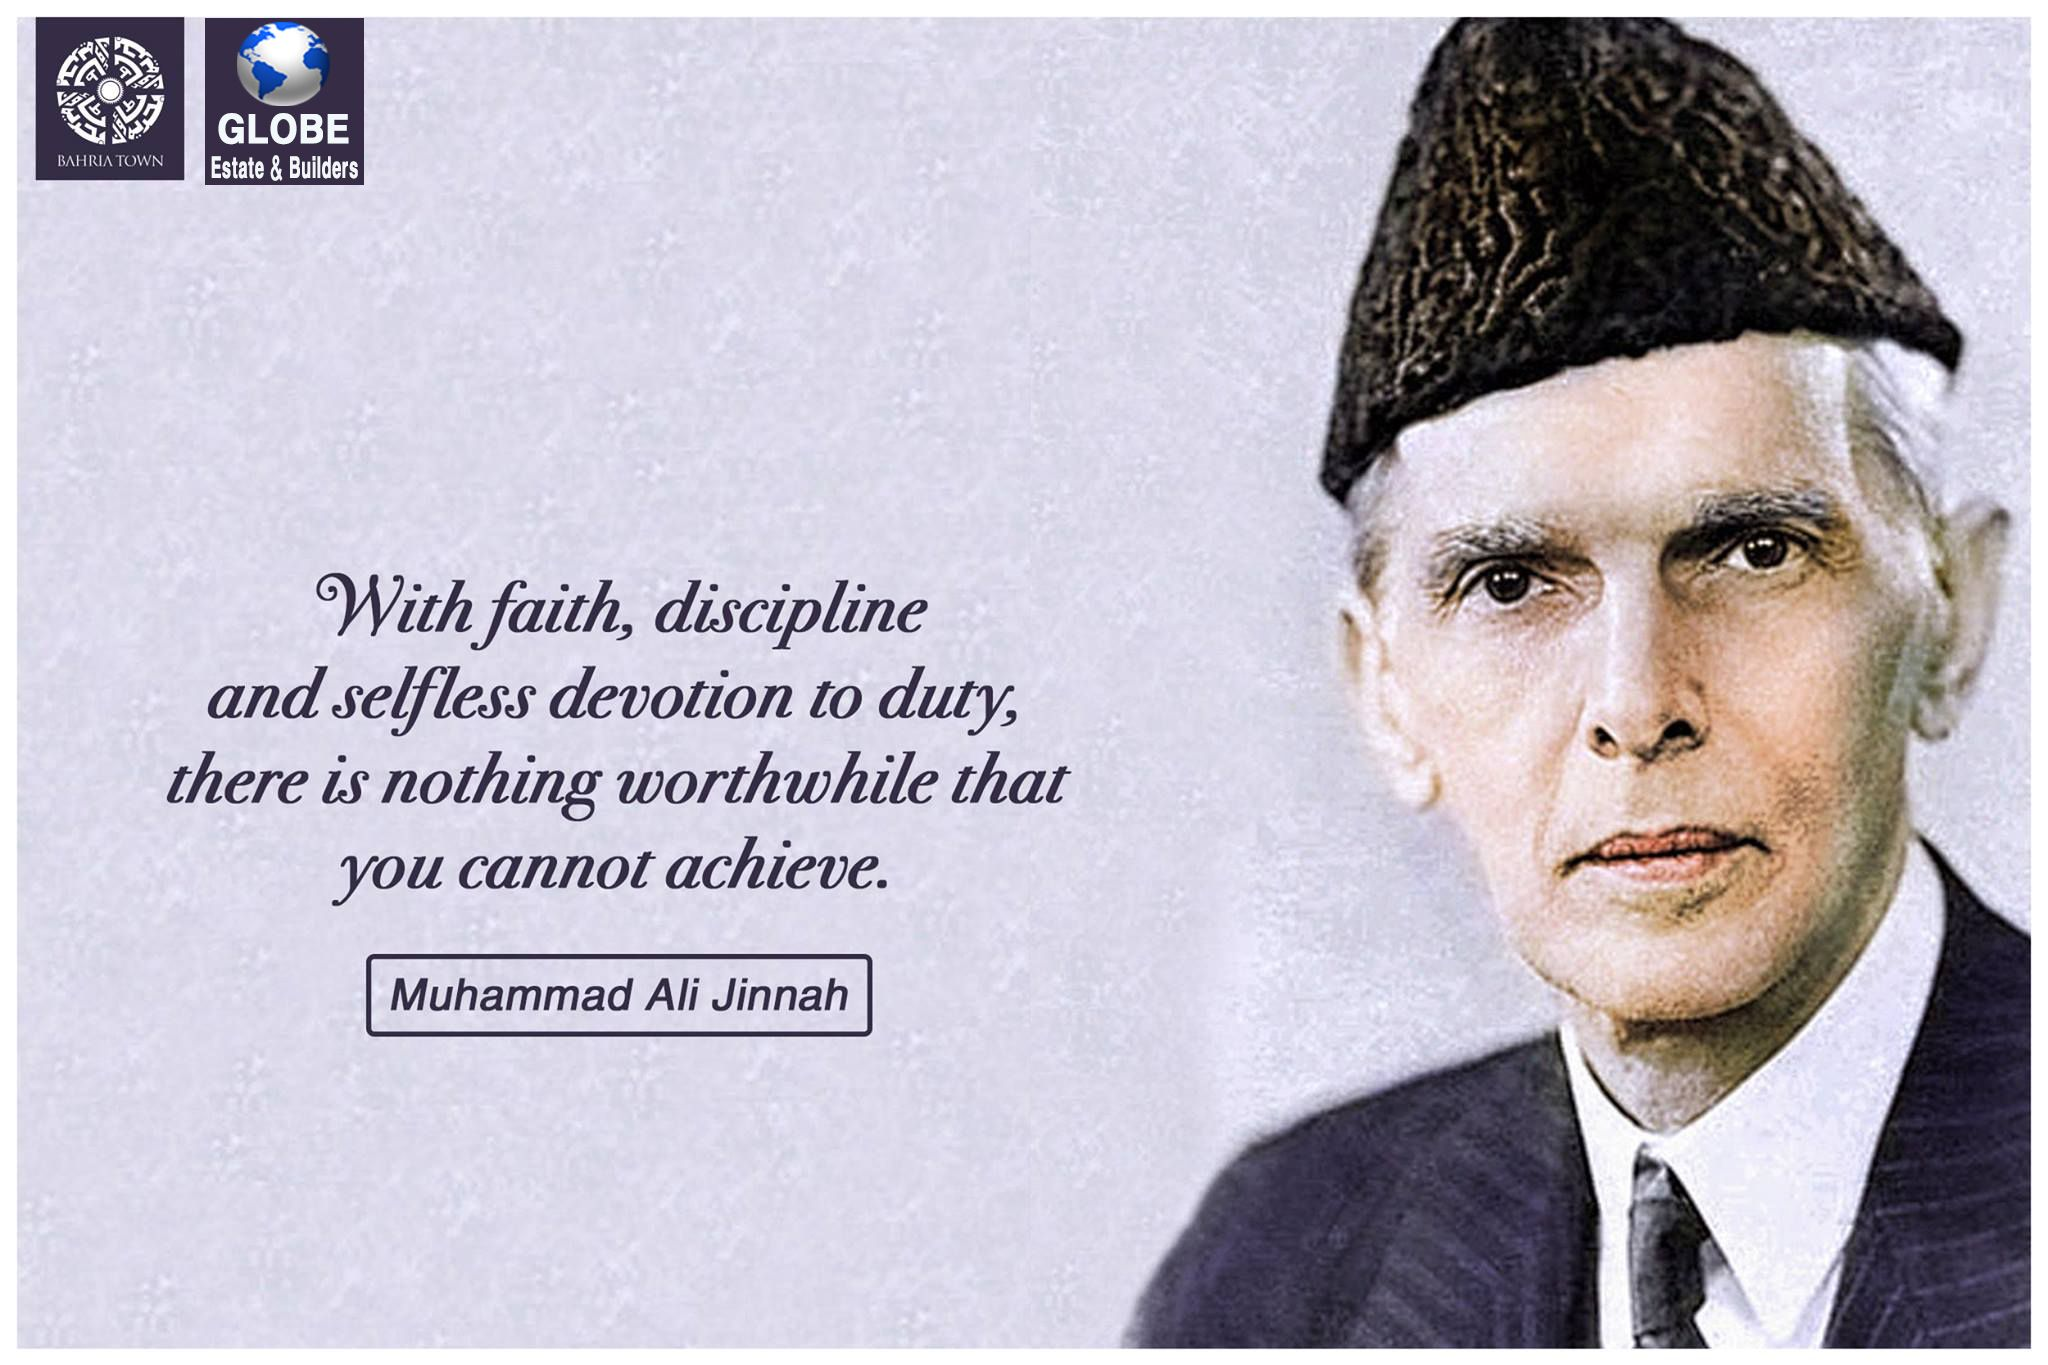 Quaid-e-Azam Mohammad Ali Jinnah, the most revered leader of the